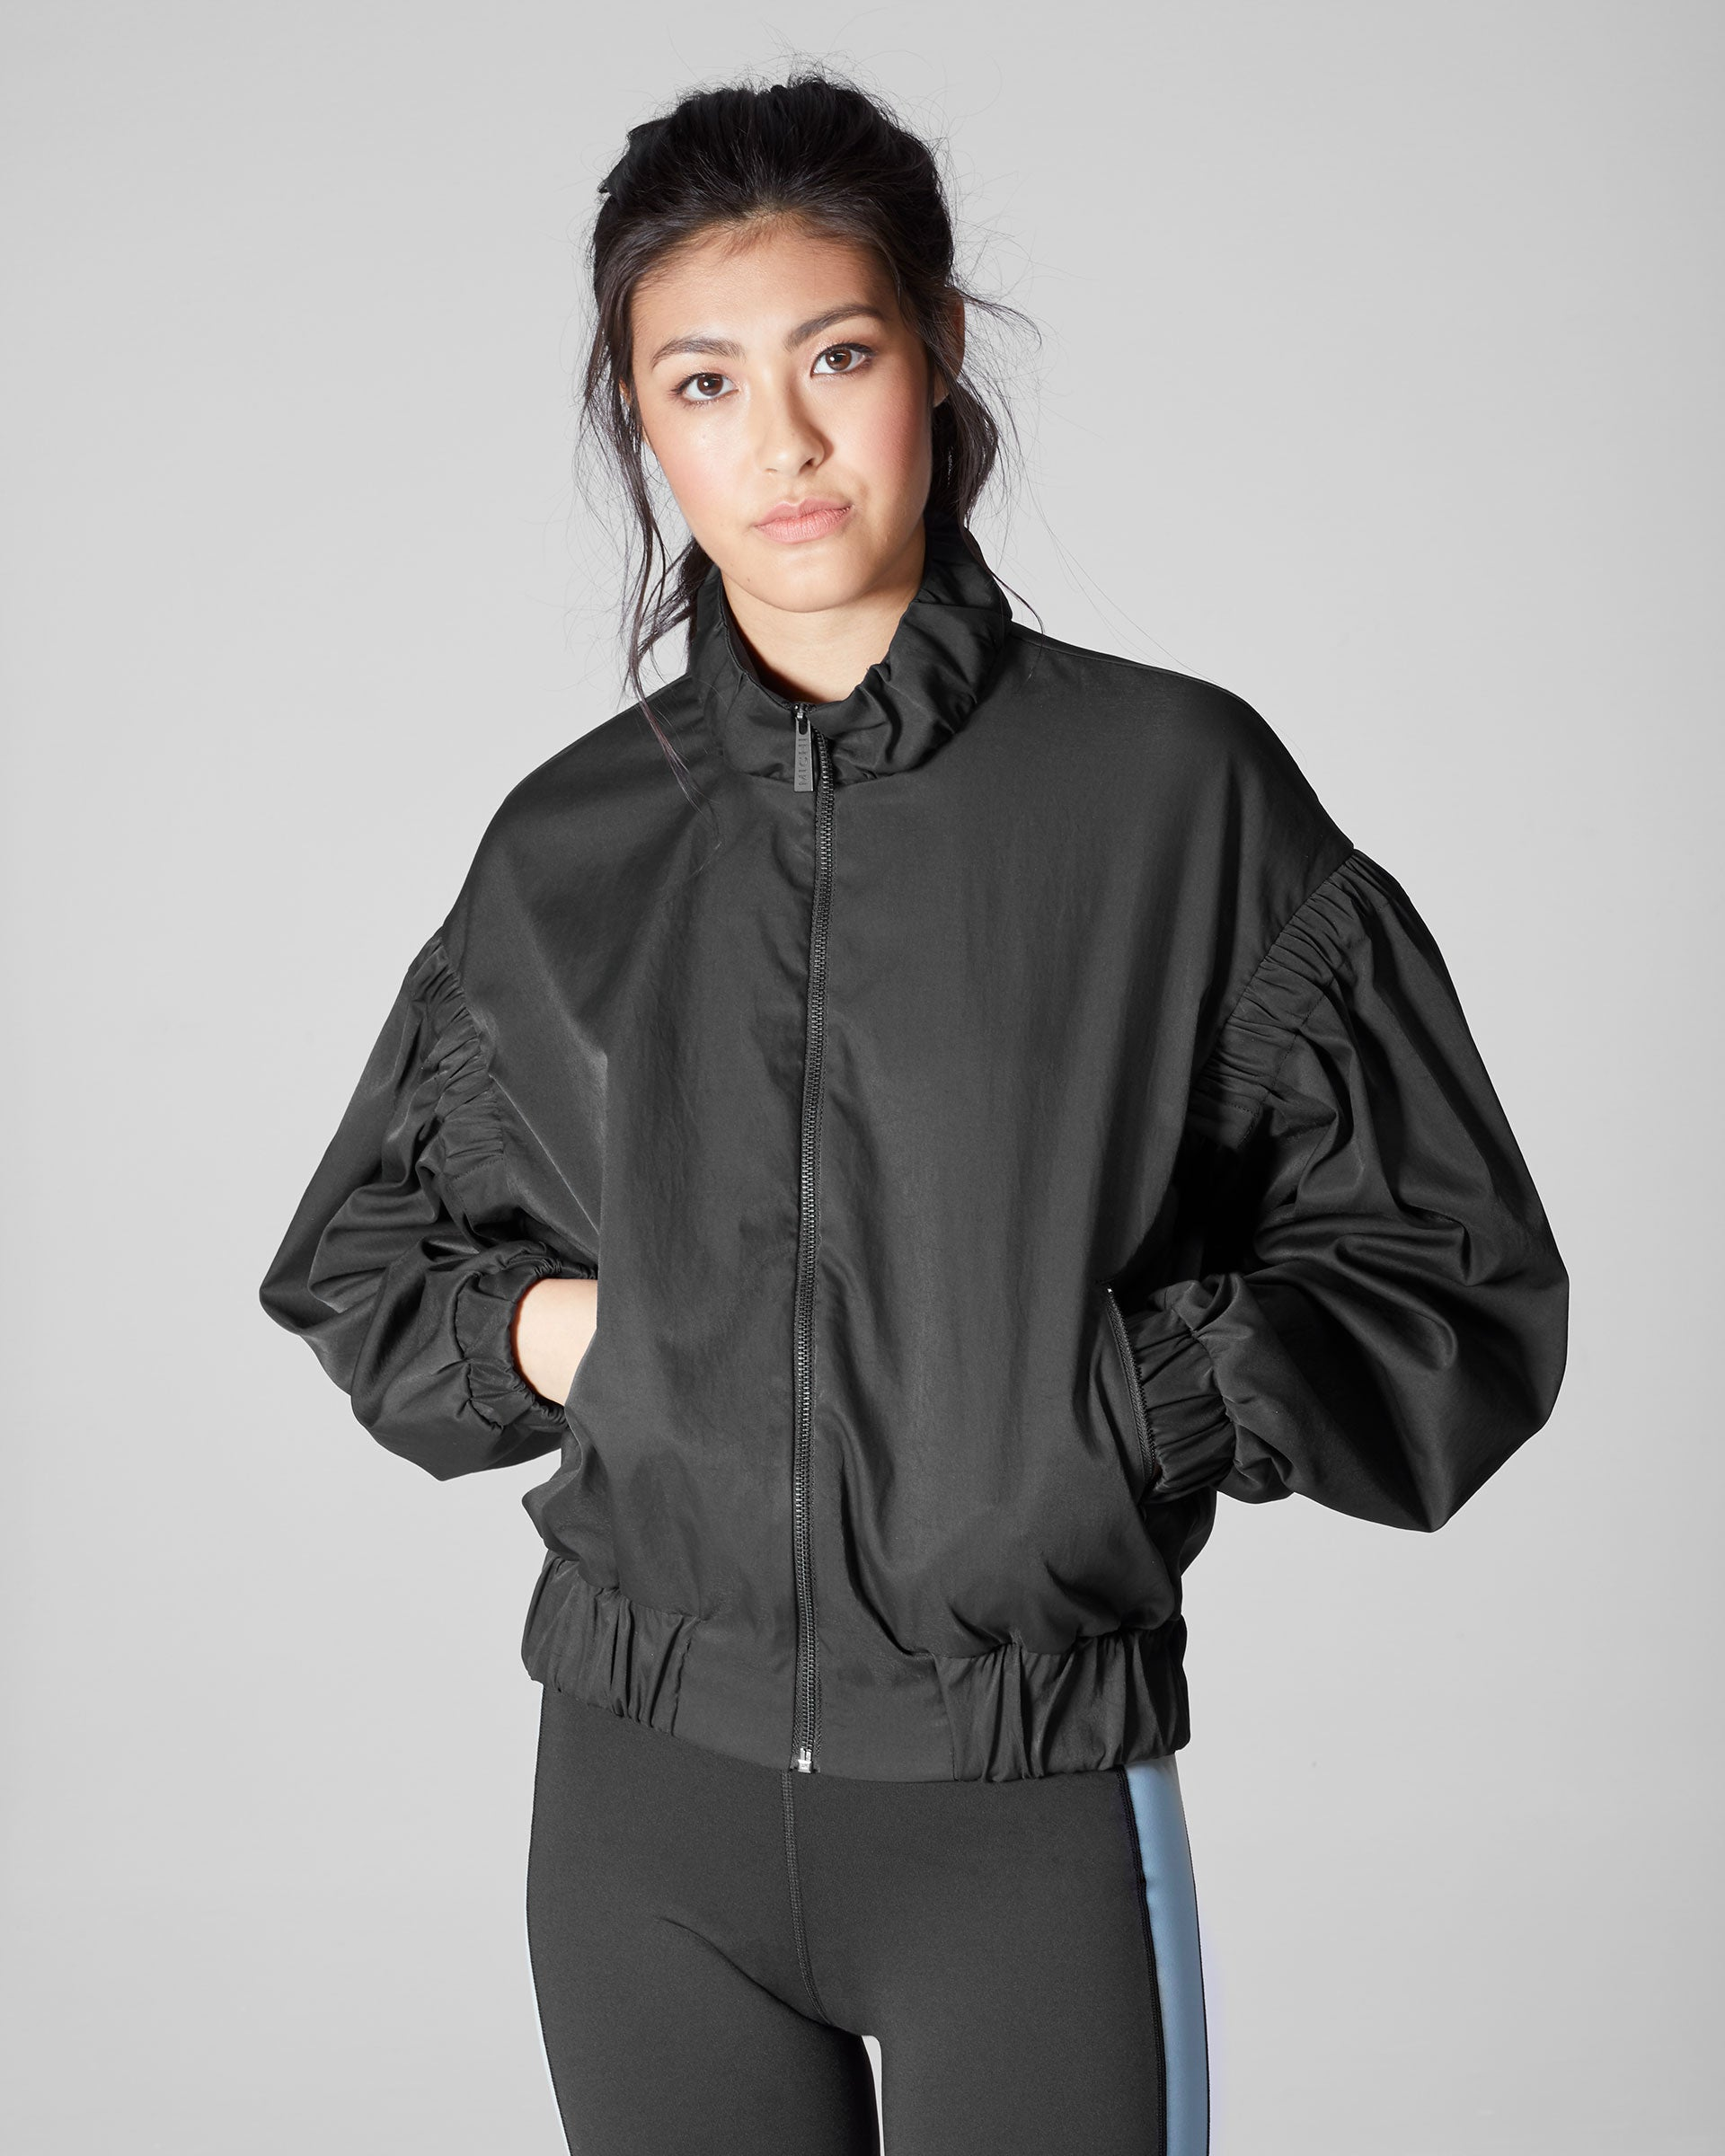 Werl Jacket - Black